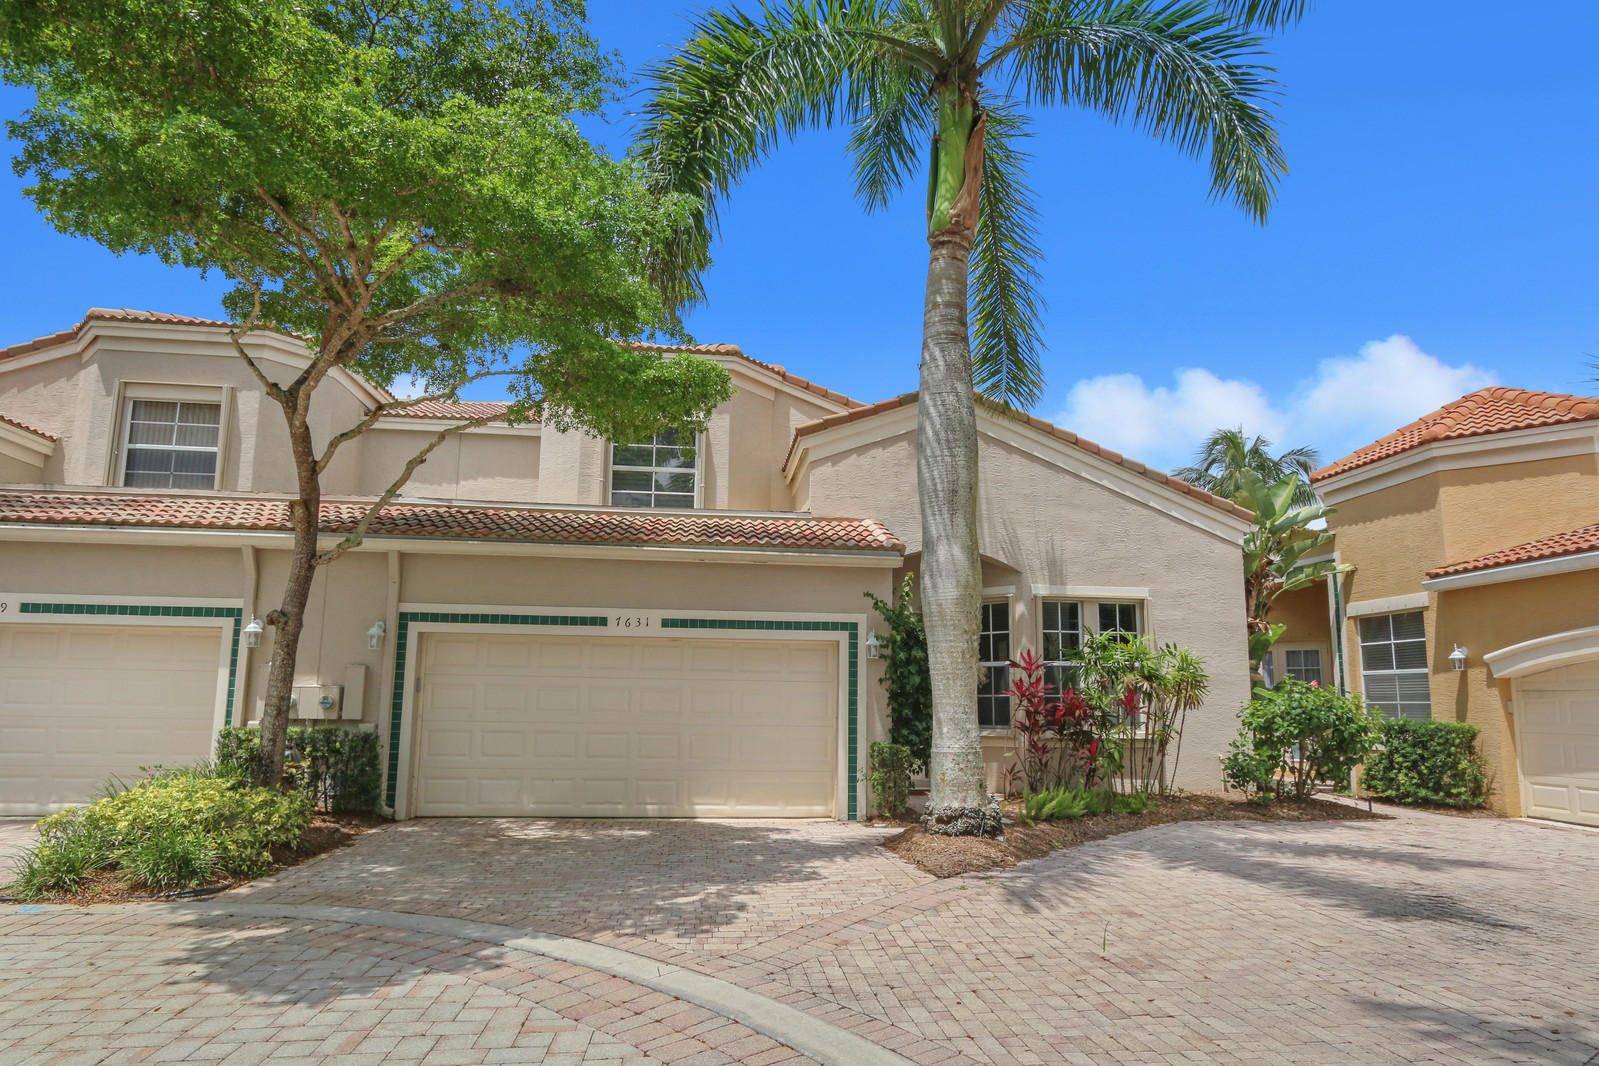 Home for sale in Ibis - Larkspur Landing West Palm Beach Florida